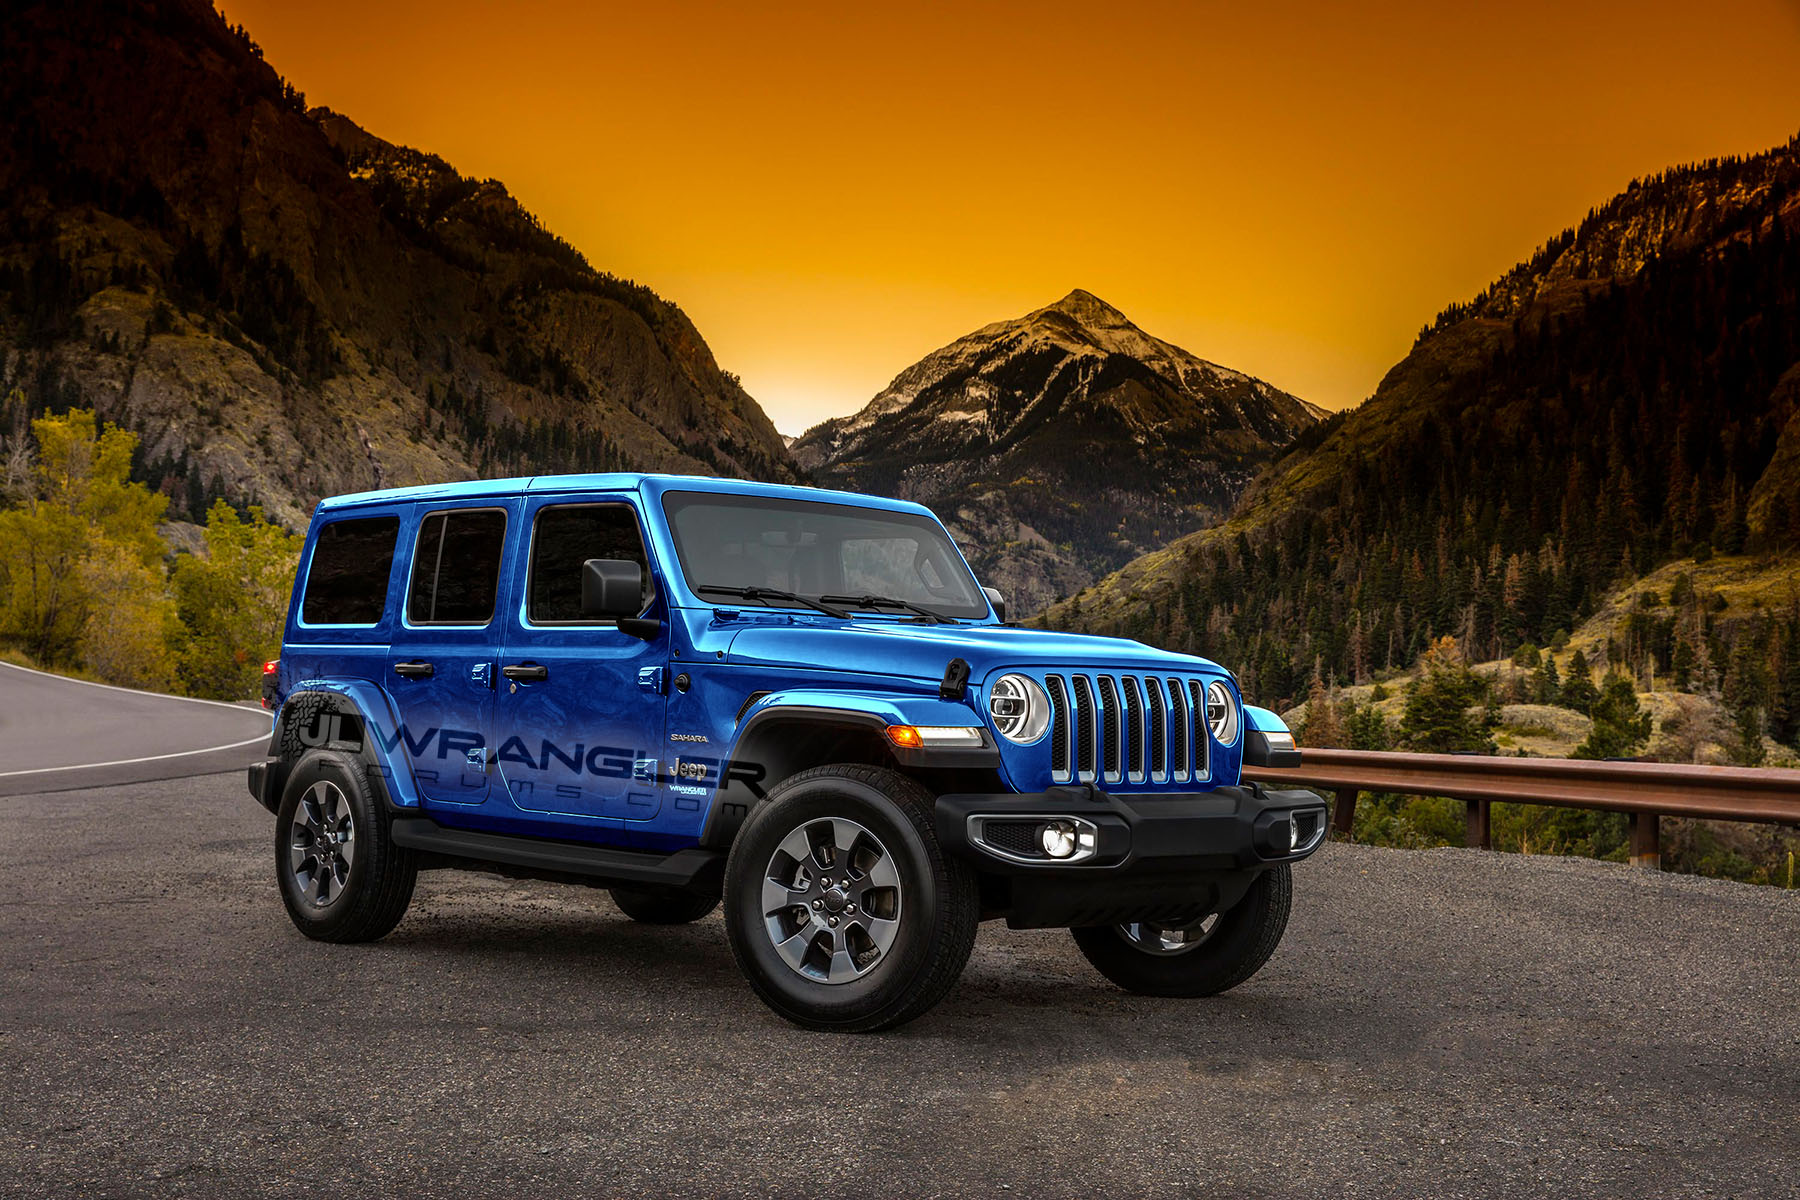 Green Jeep Wrangler >> More 2018 Wrangler JL Colors Coming - Nacho, Mojito!, Punk'n, Ocean Blue, Sting-Gray (with ...